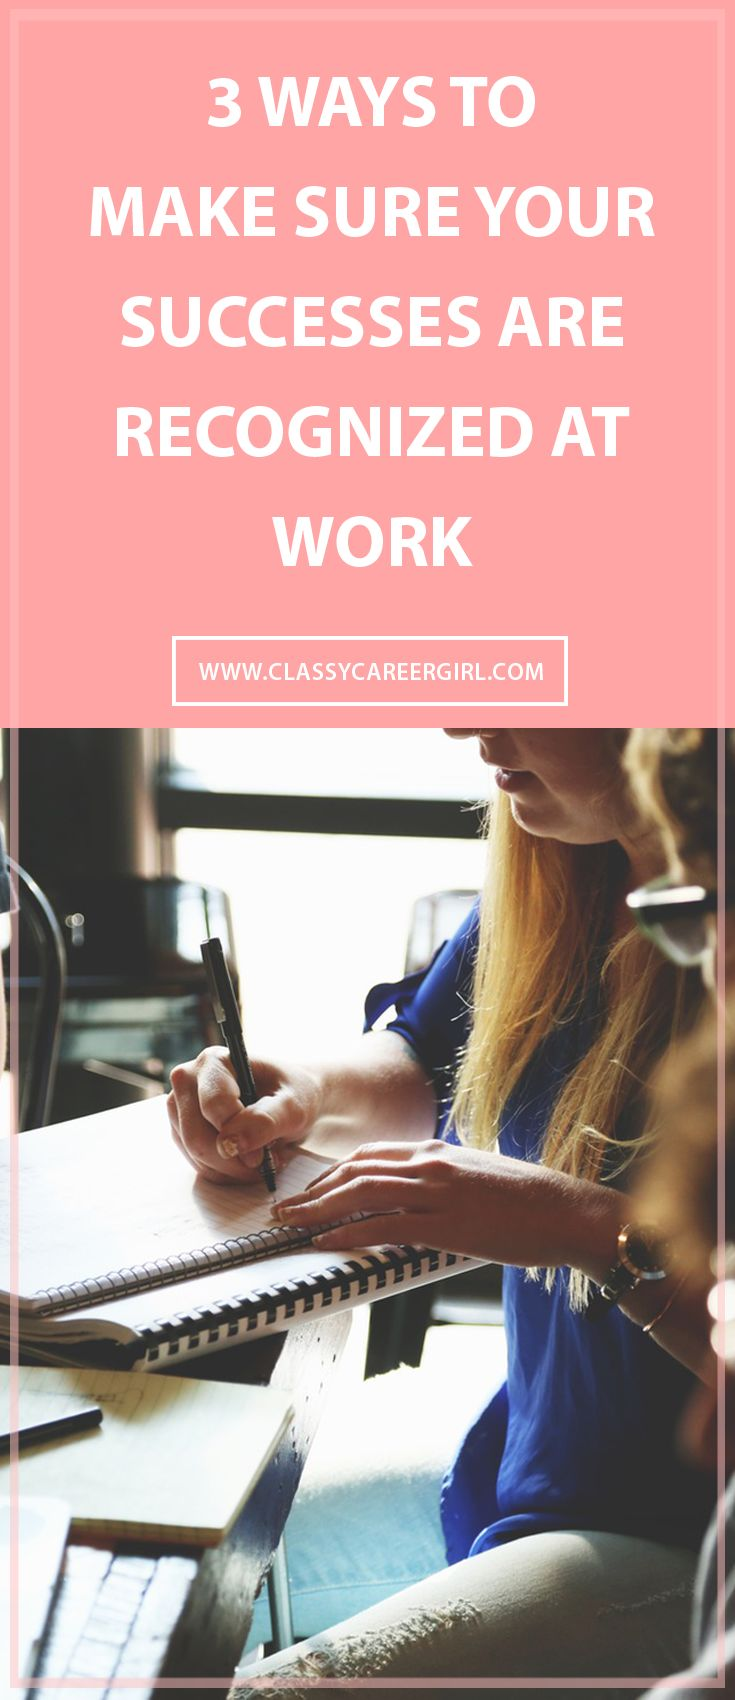 best images about career tips productivity 3 ways to make sure your successes are recognized at work